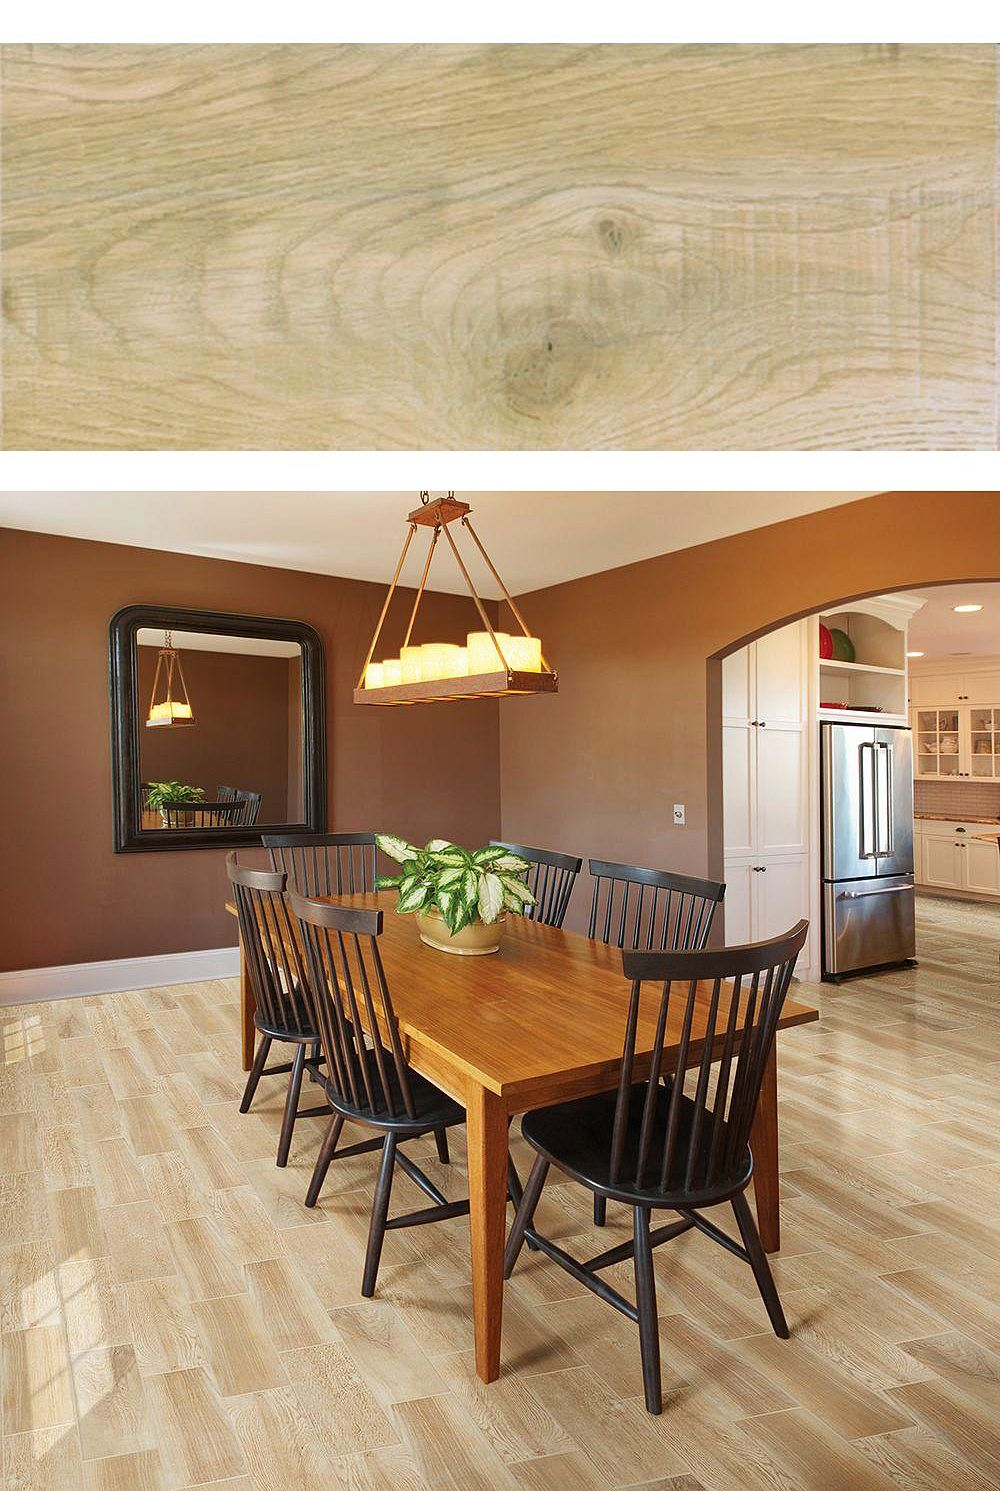 Wood-look tile is a great option if you want the warm ...